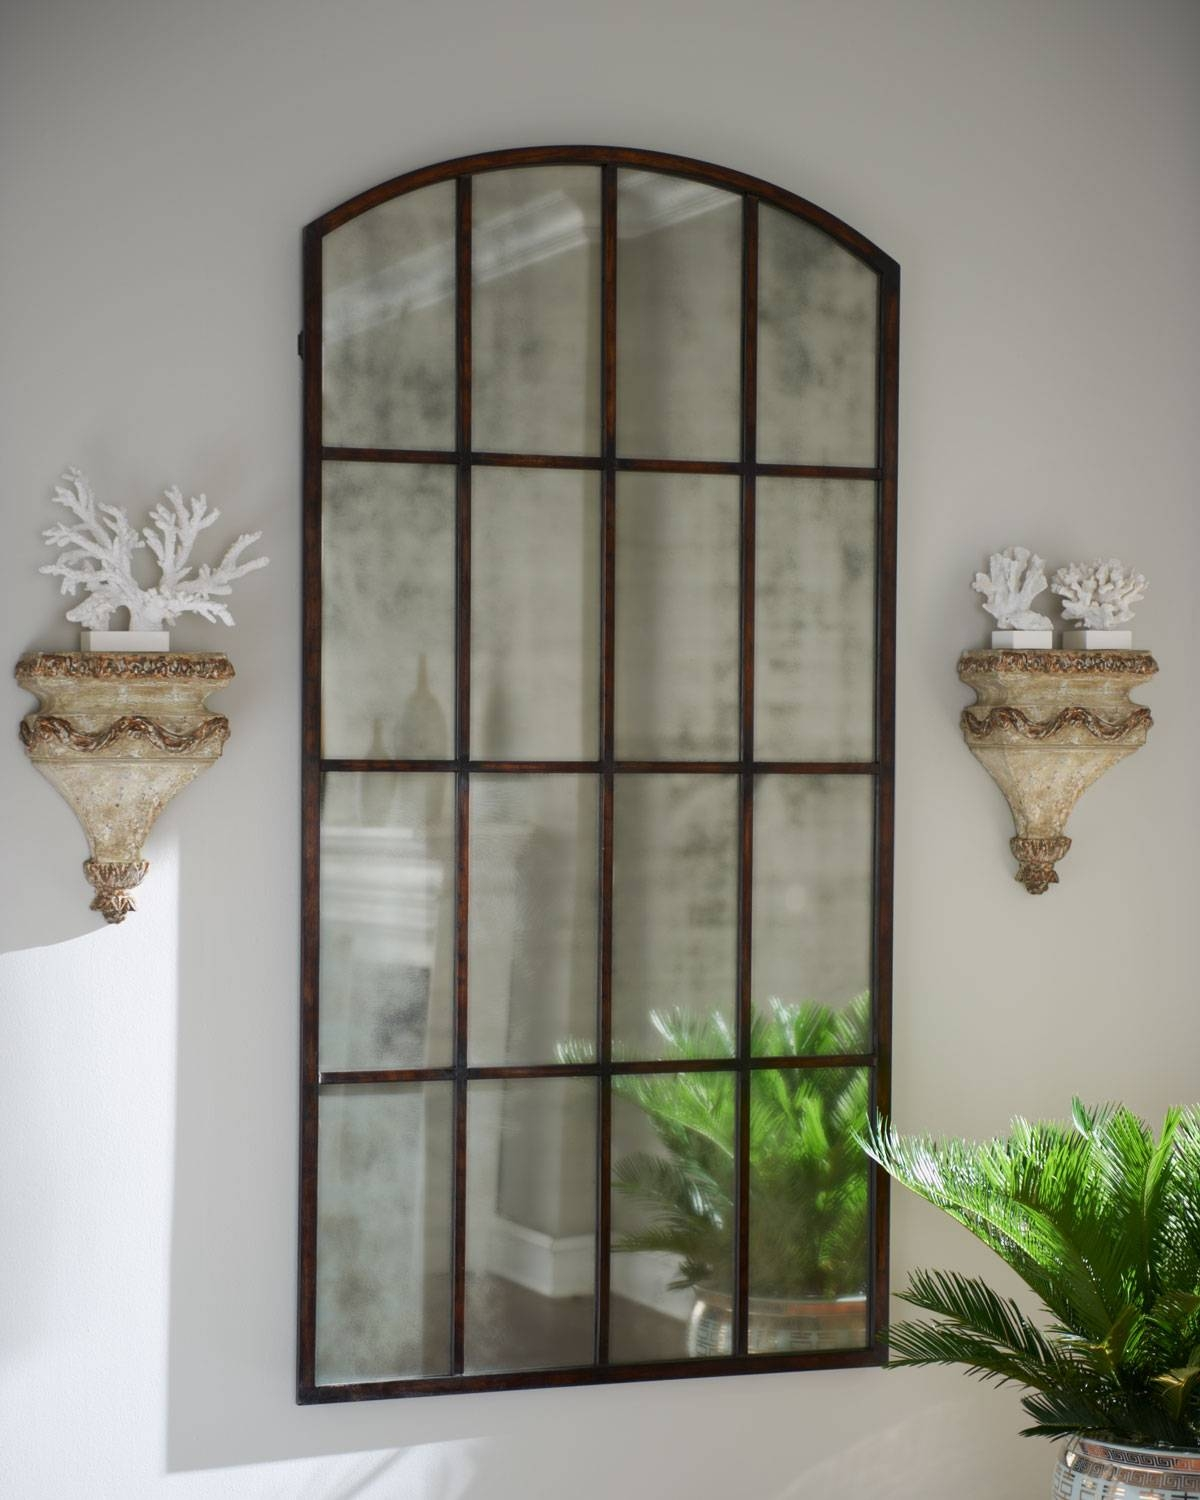 Exterior: Beautiful Arched Mirror Design Ideas With Rustic Arched with regard to Large Arched Mirrors (Image 7 of 25)